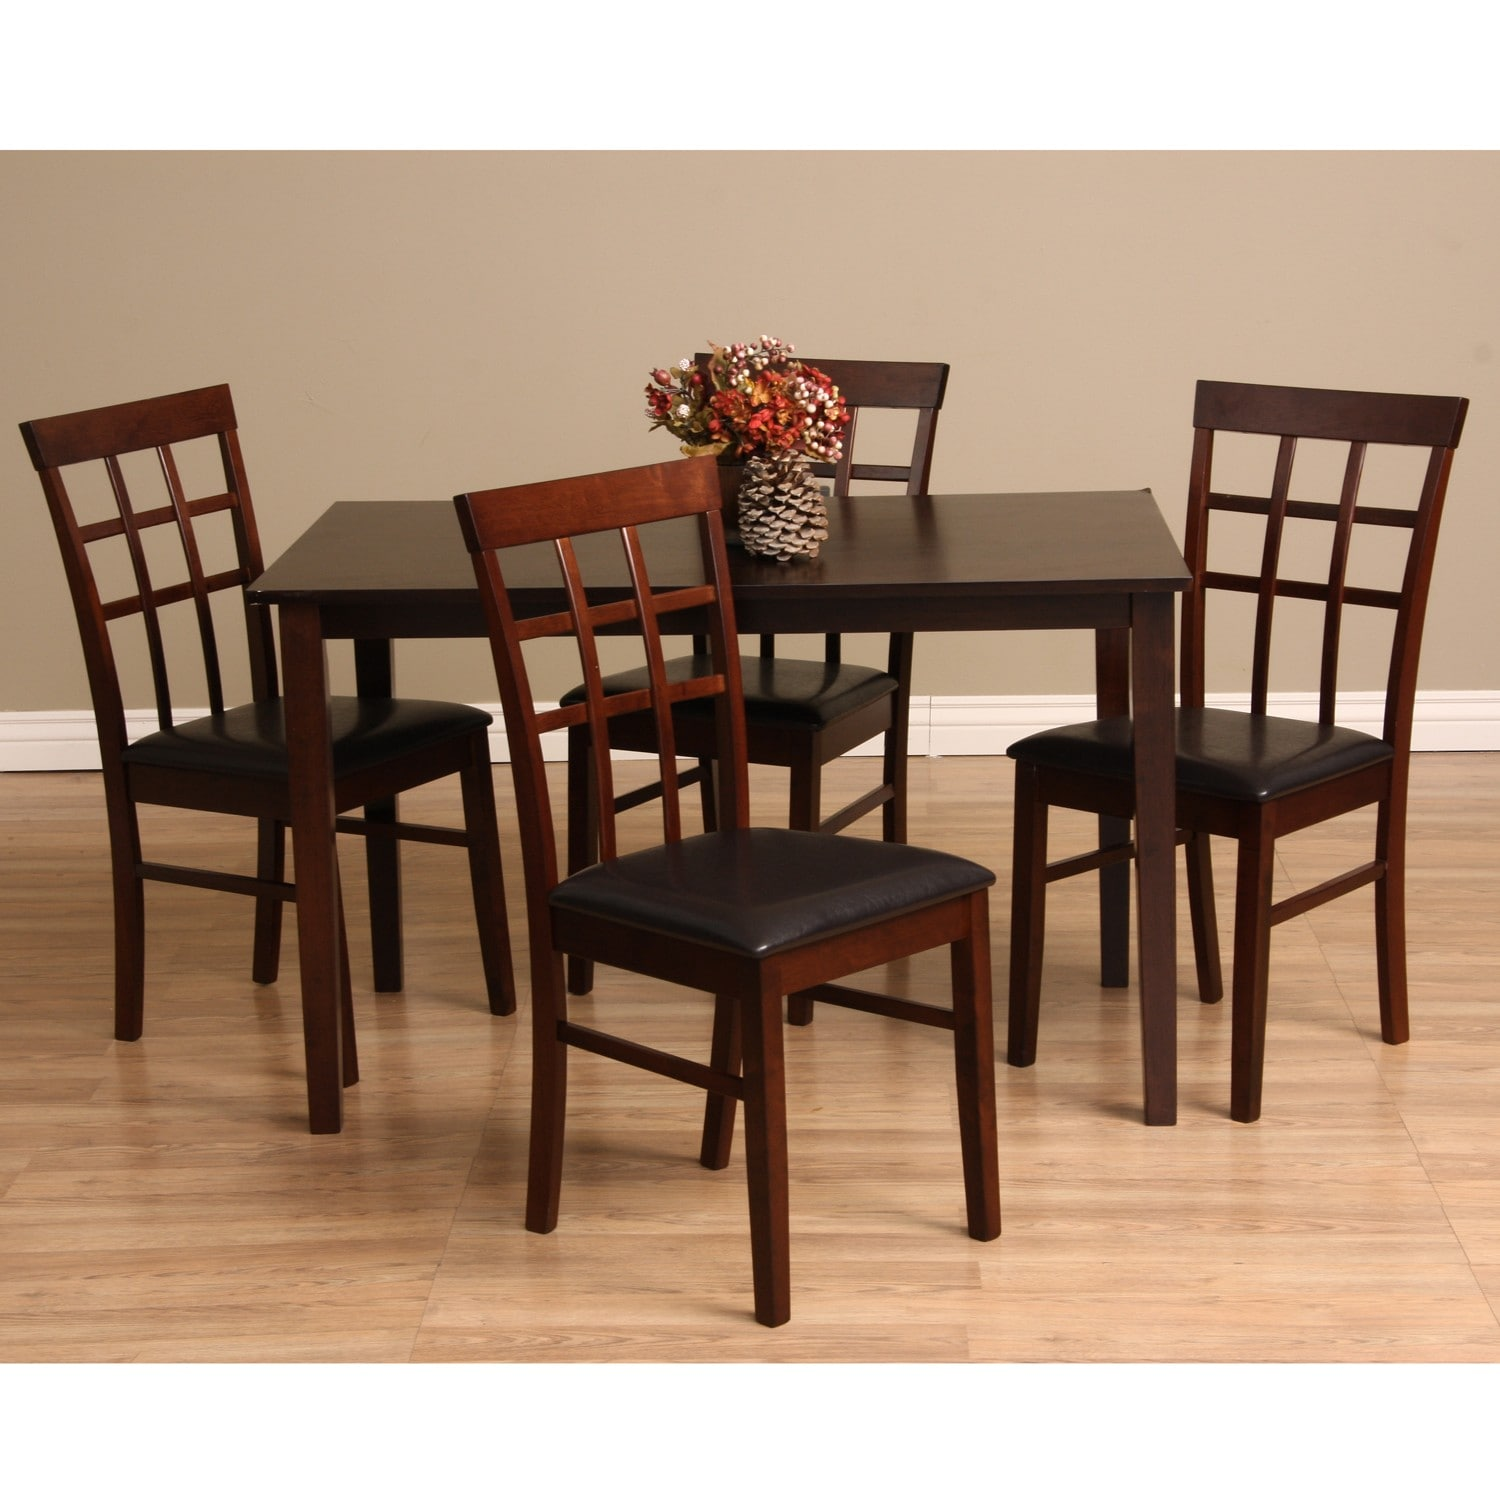 piece dining furniture set overstock shopping big discounts